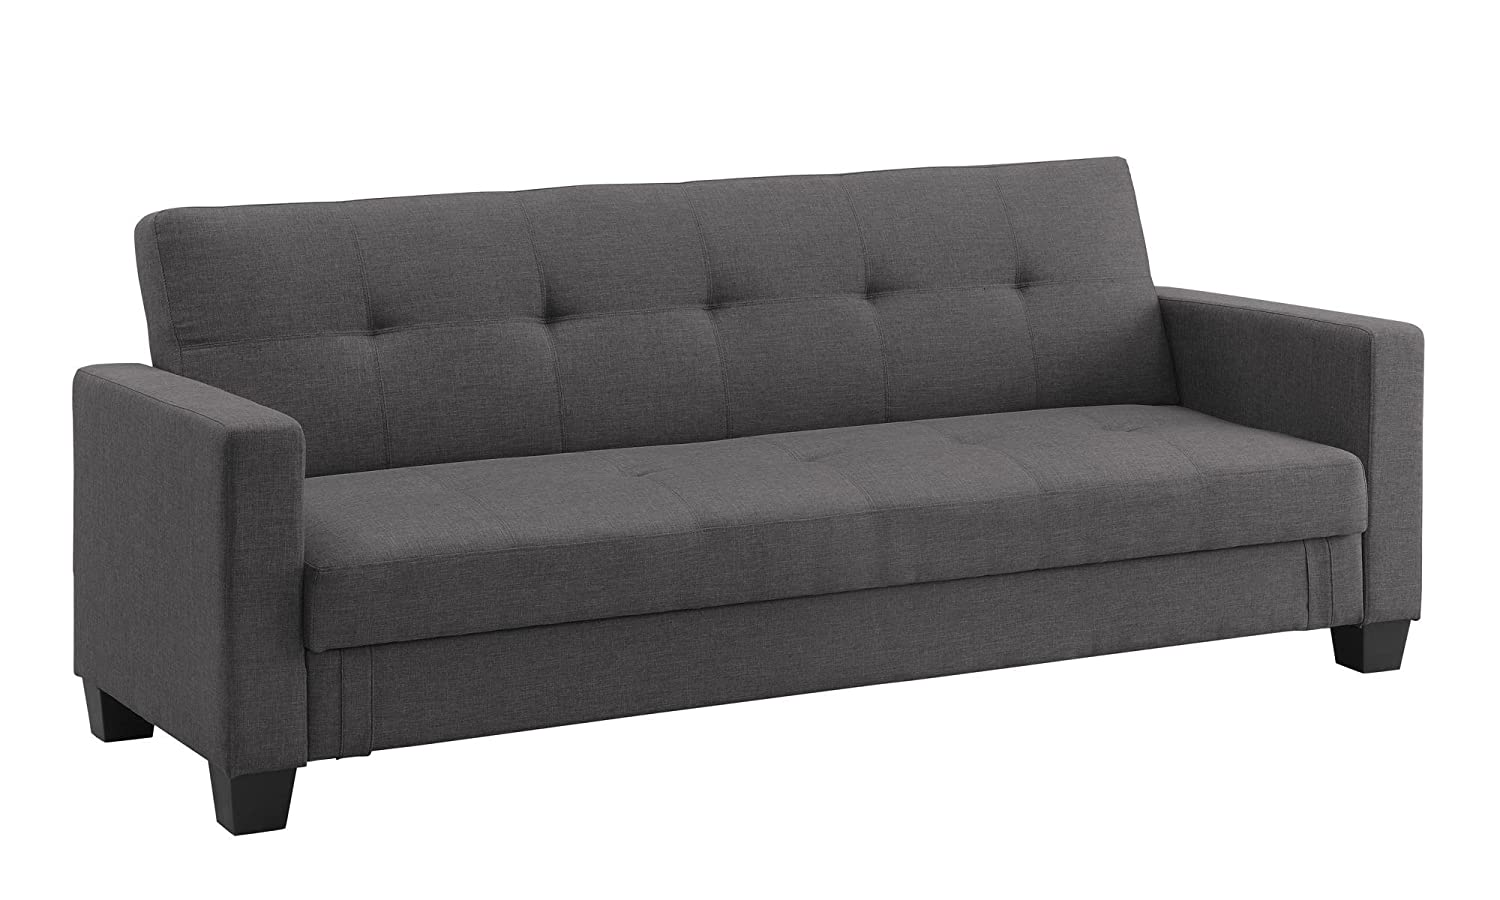 DHP Leighton Futon Couch with Hidden Storage, Full Size - Grey Linen